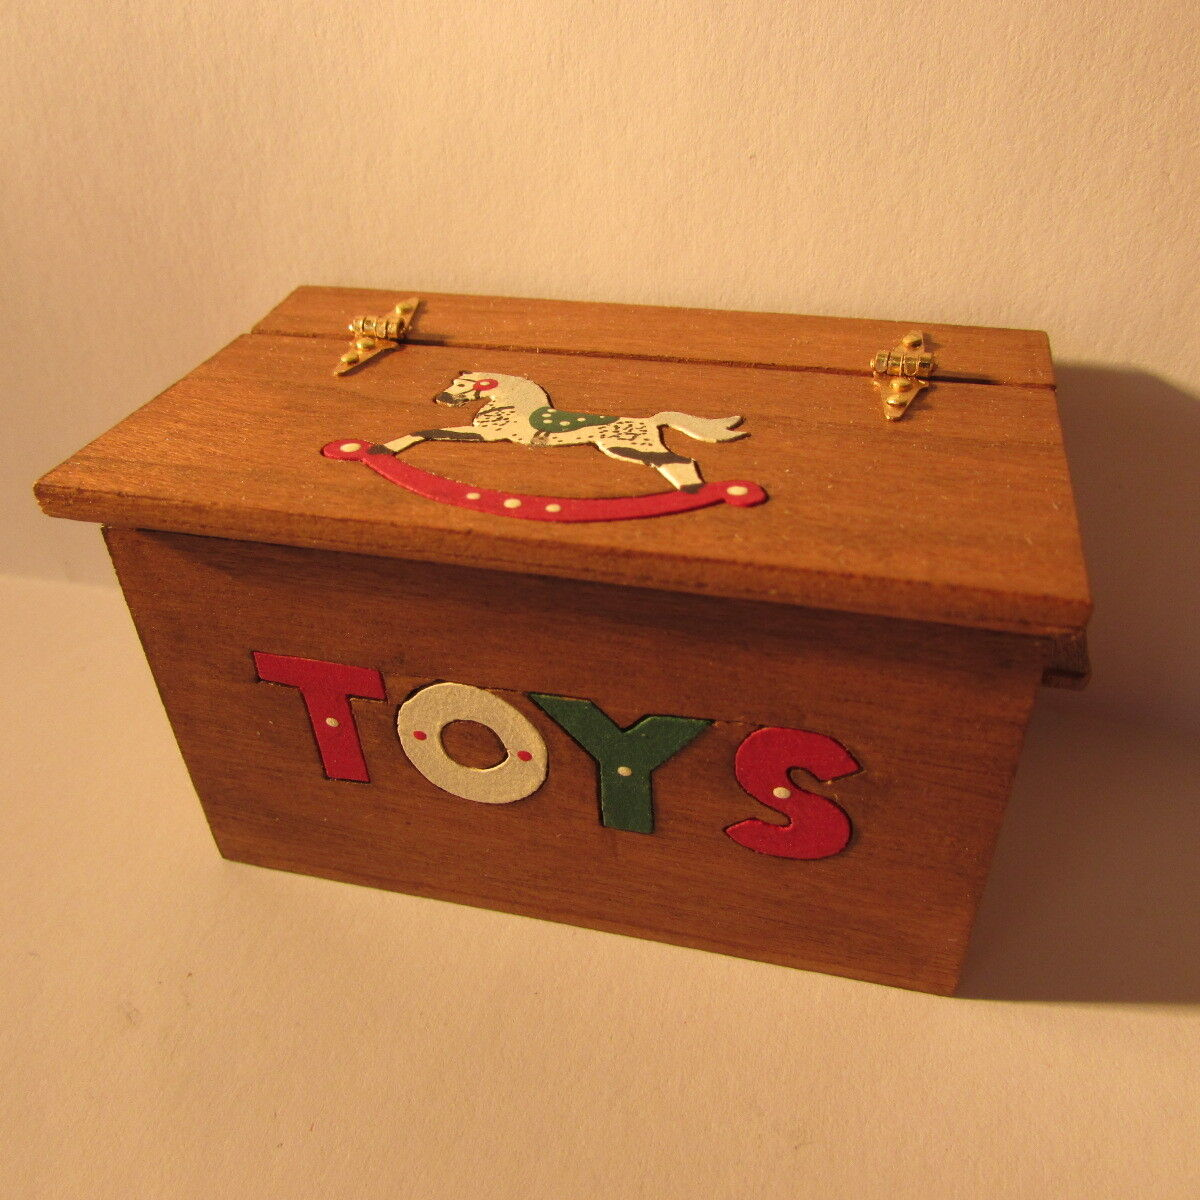 Artisan made wooden toy box with opening hinged lid  dollhouse miniature  1:12